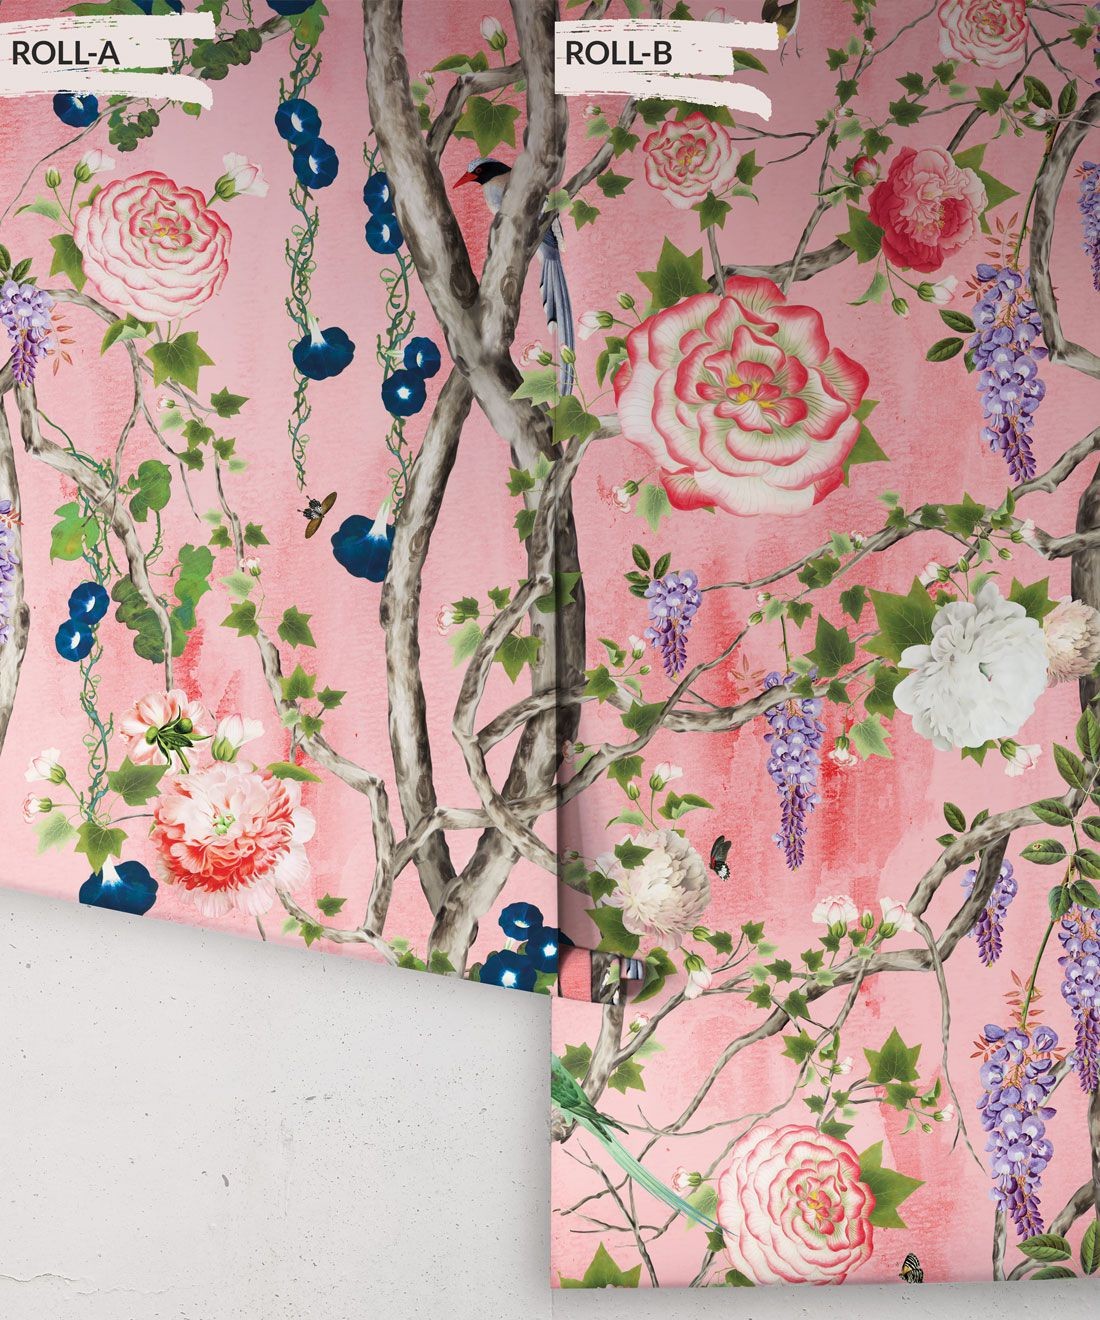 Empress Wallpaper • Romantic Wallpaper • Floral Wallpaper • Chinoiserie Wallpaper • Coral colour wallpaper rolls